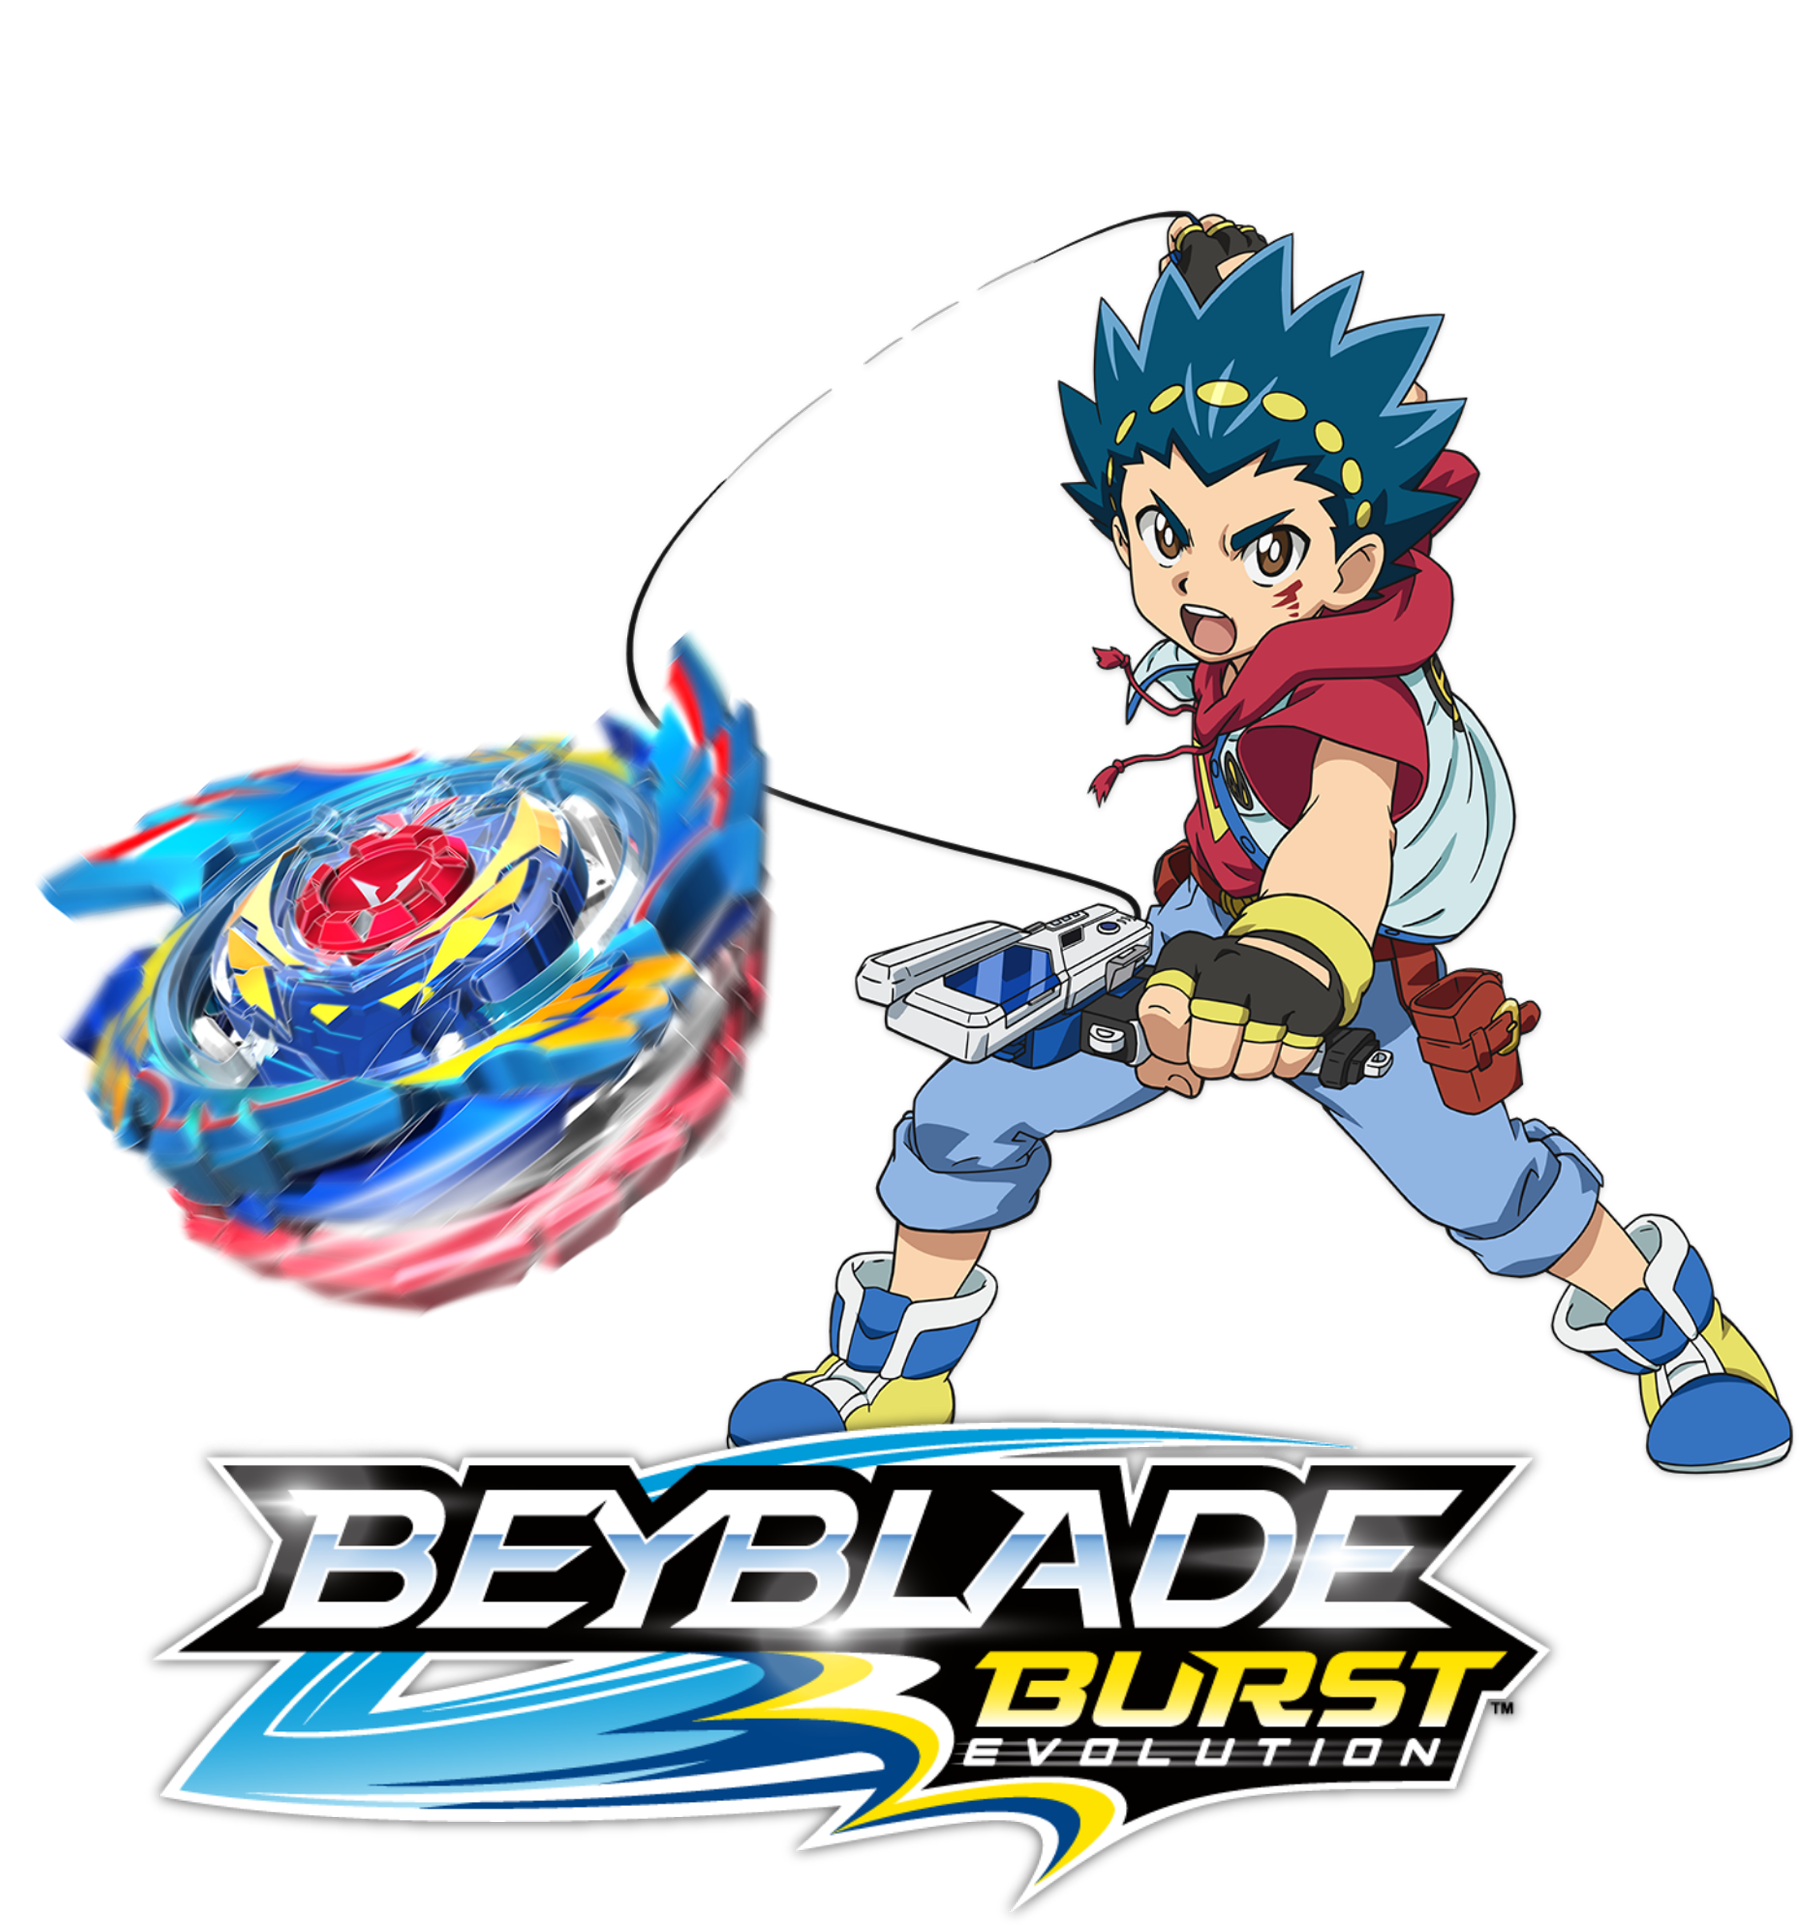 Beyblade burst png. The official website home